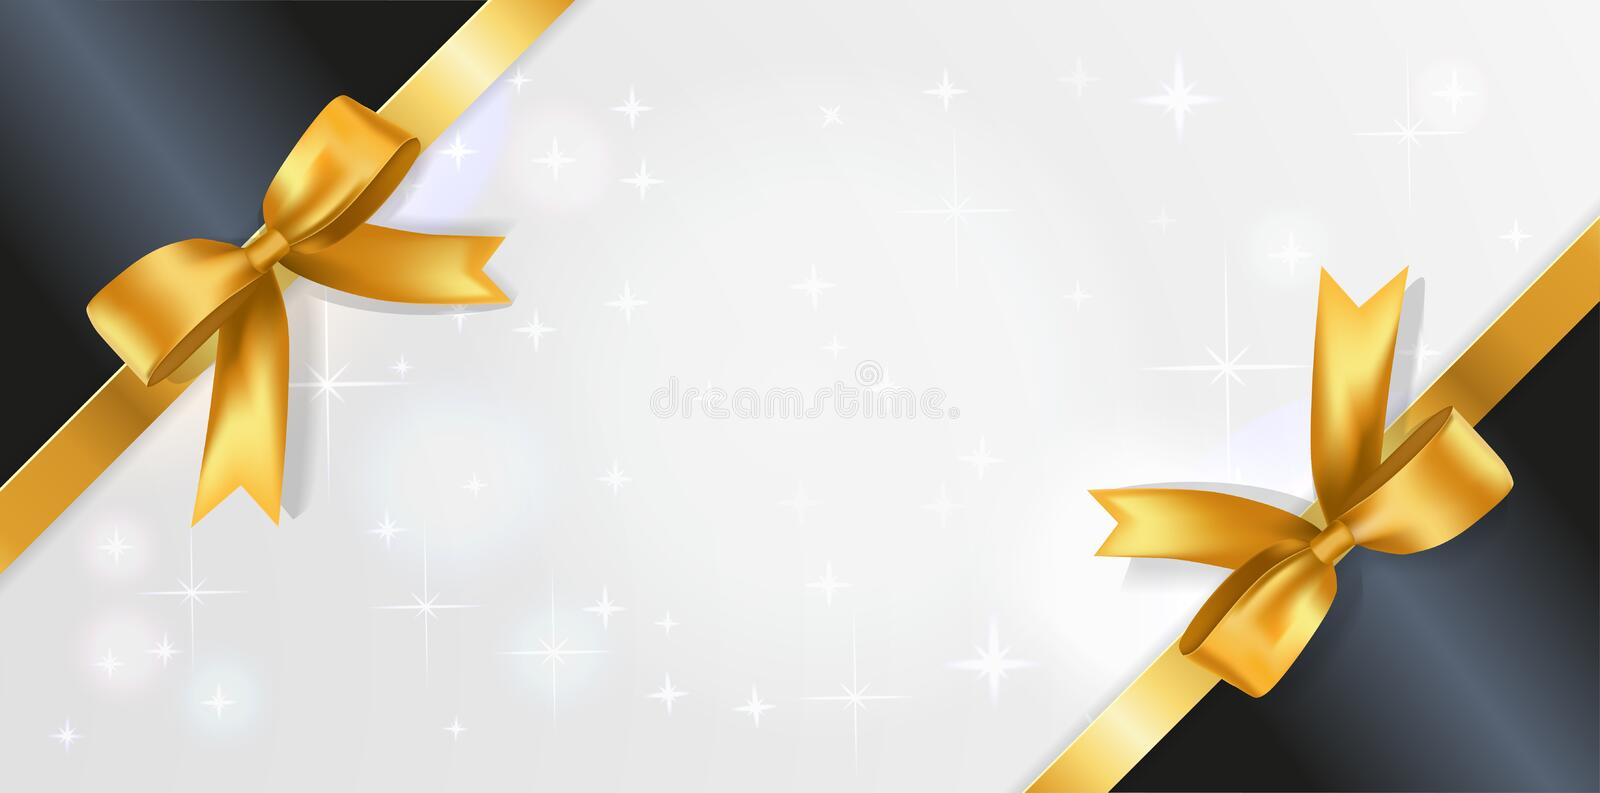 Horizontal background with white sparkling center and black corner ribbons with Bows. Banner with satin bow decoration border. vector illustration